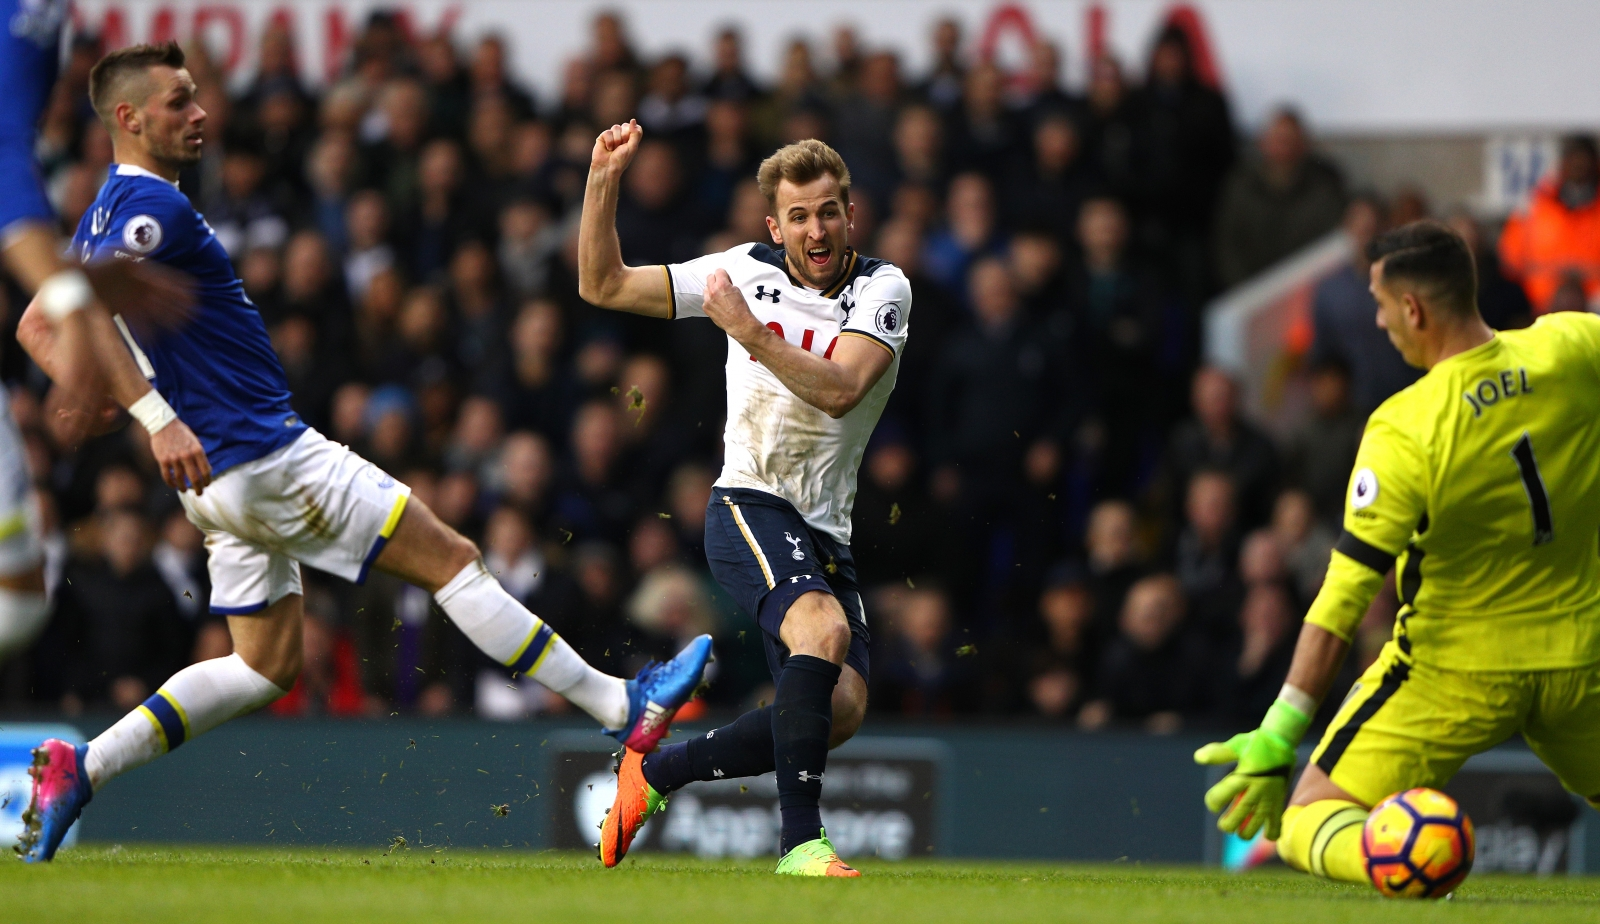 Spurs, City win to stay in Premier League chasing pack